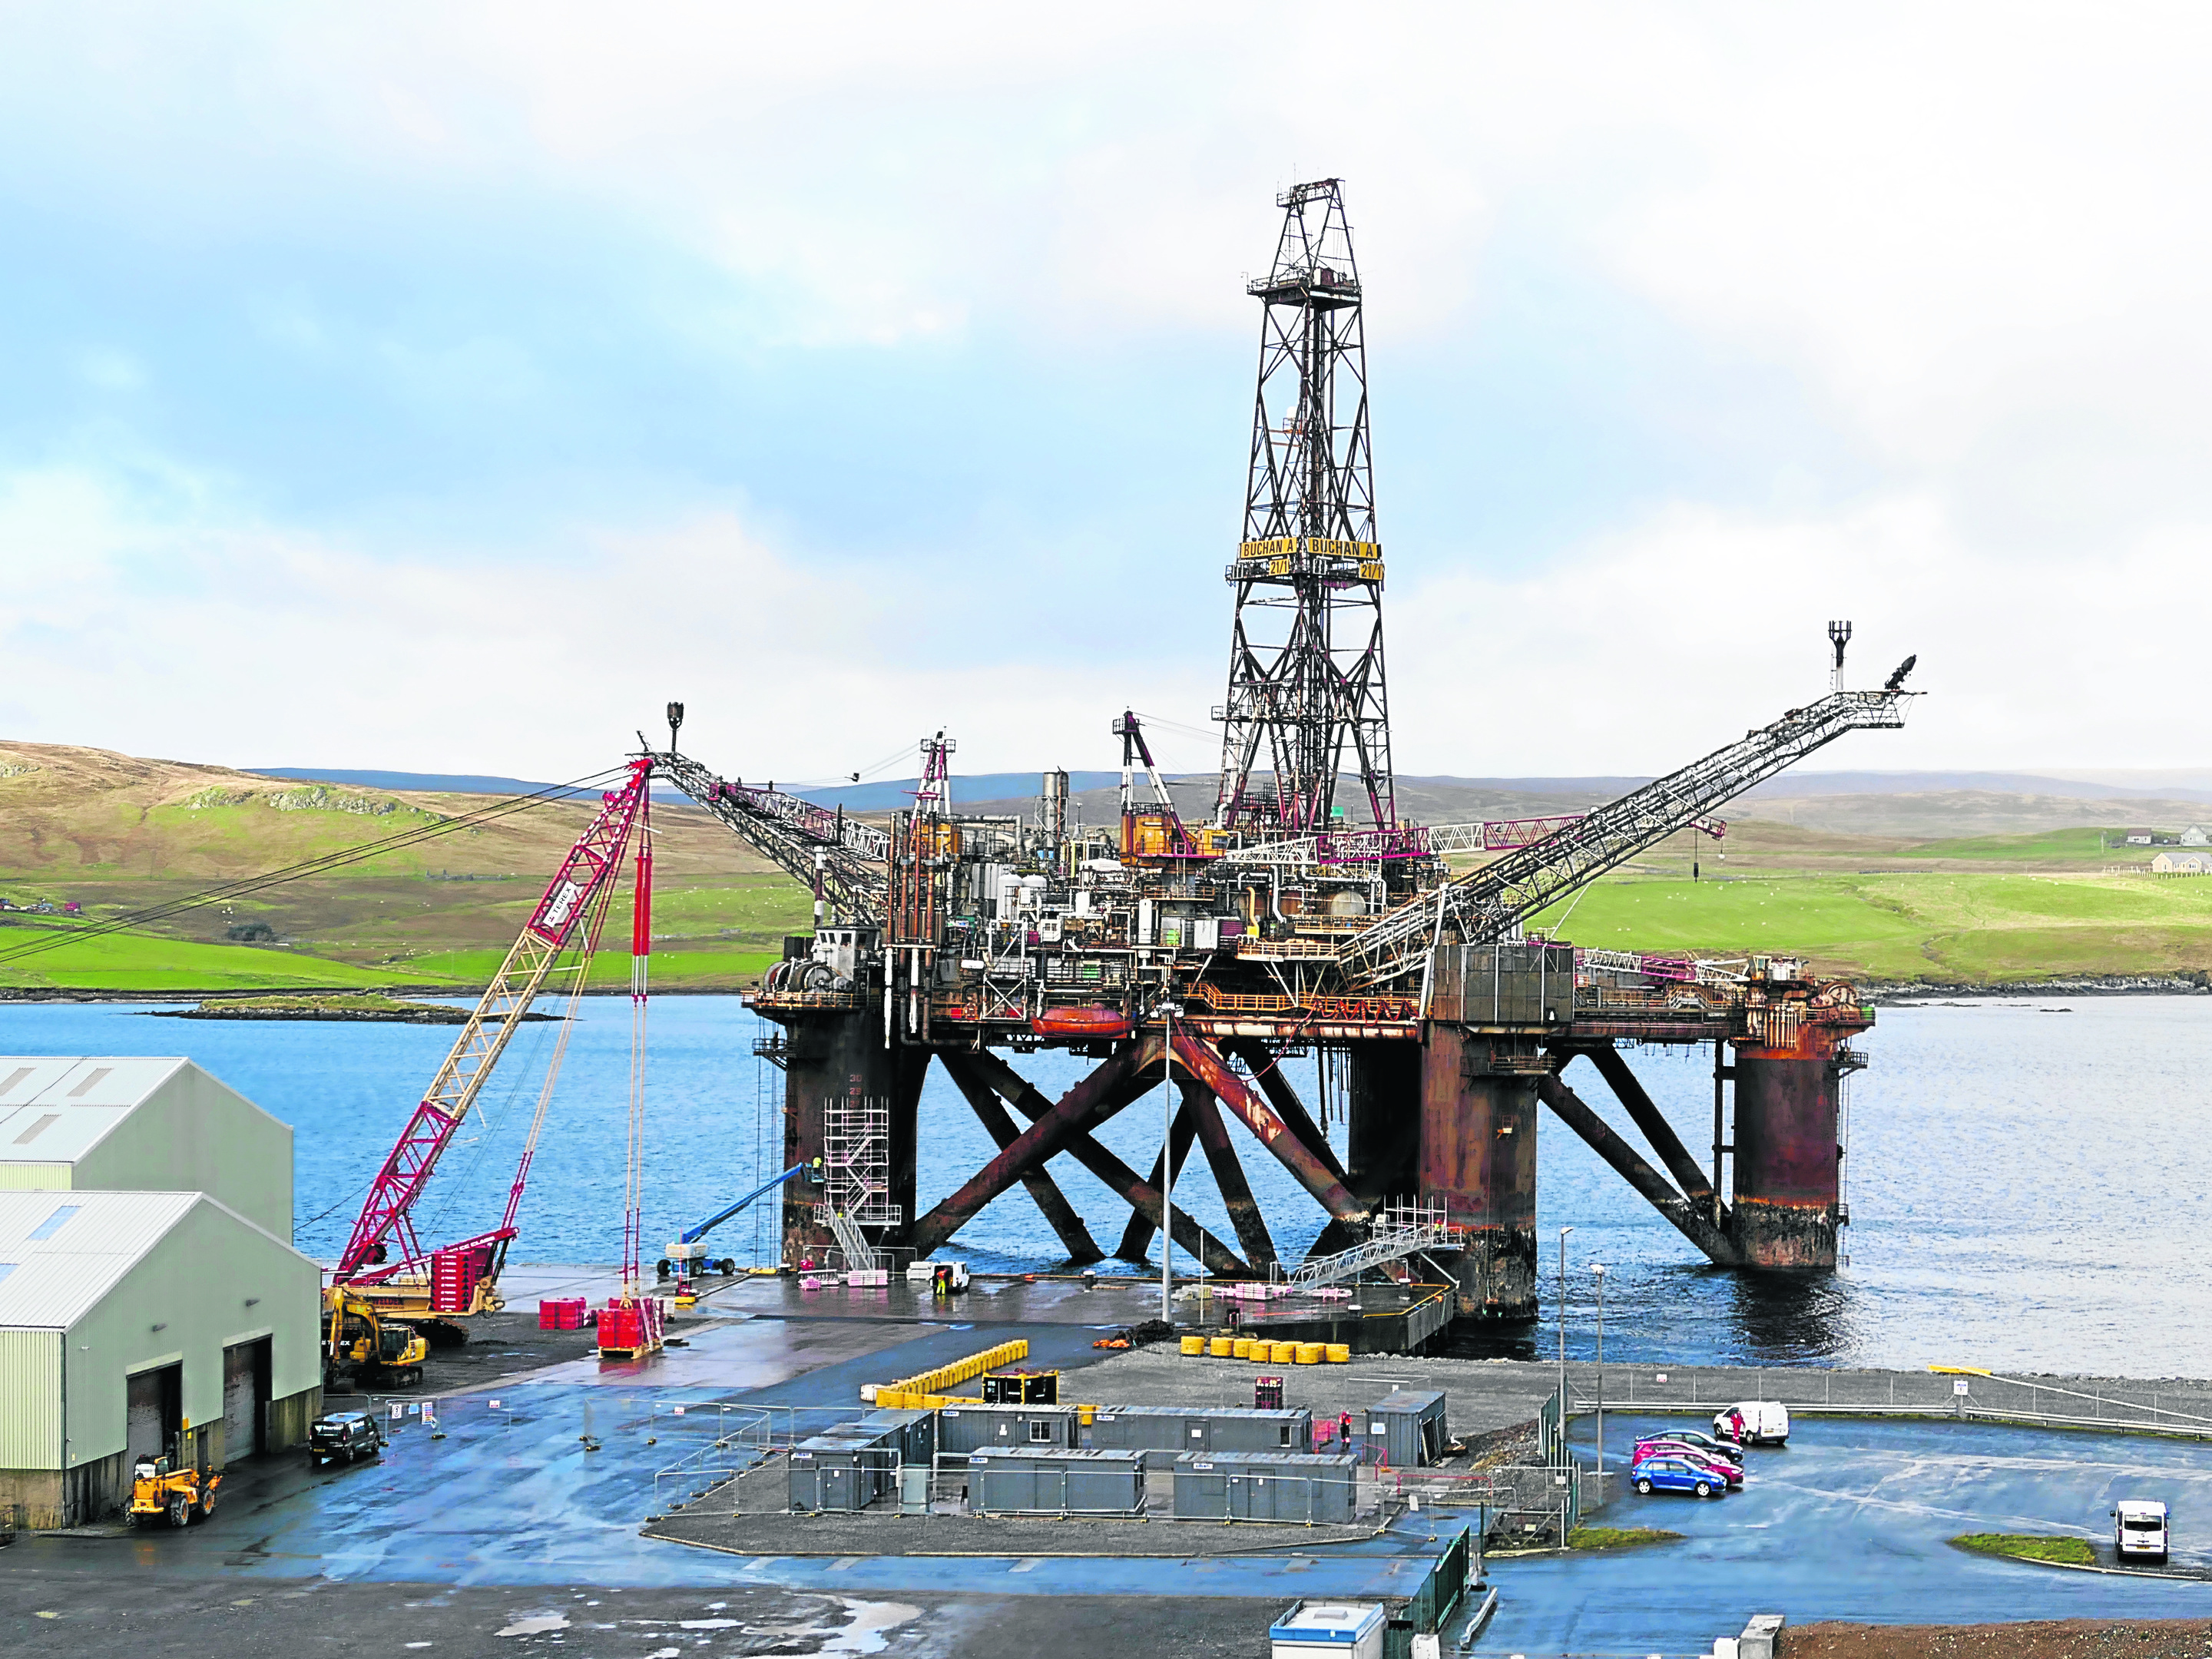 The Buchan Alpha arrived in Shetland for decommissioning in 2017.